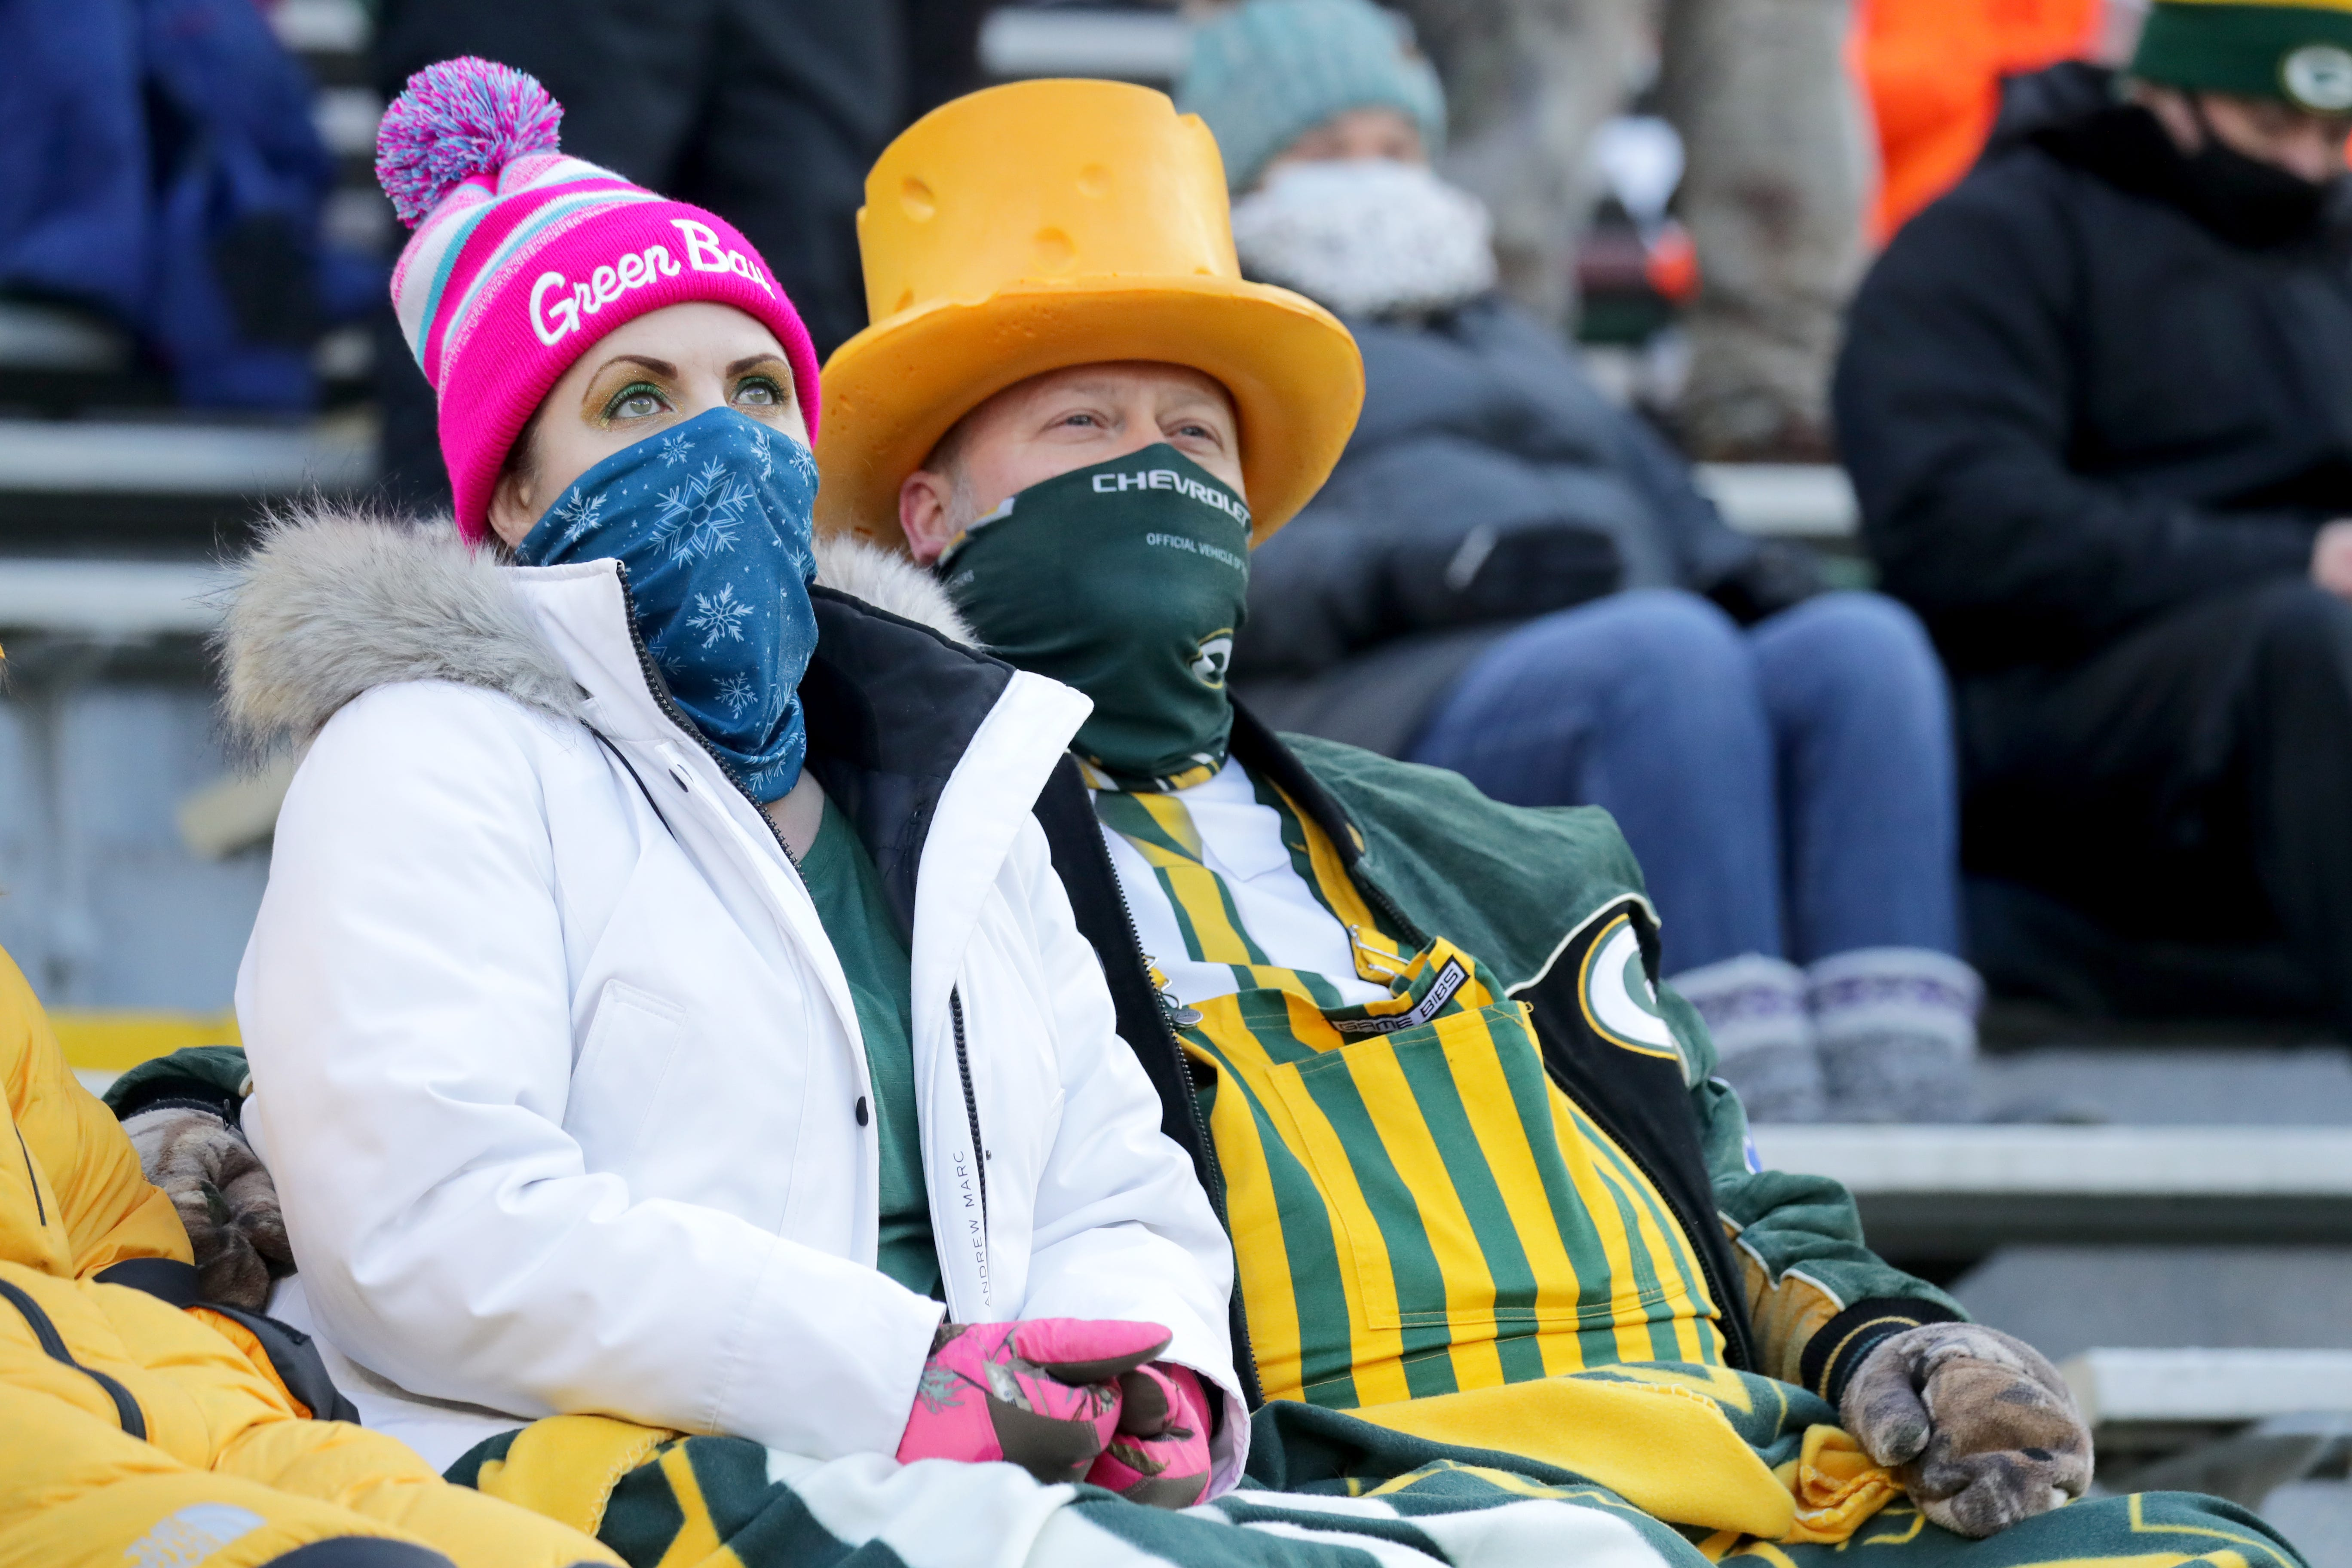 Fans watch, dejected, during the fourth quarter of the Green Bay Packers game against the Tampa Bay Buccaneers for the NFC championship at Lambeau Field in Green Bay on Jan. 24, 2021.